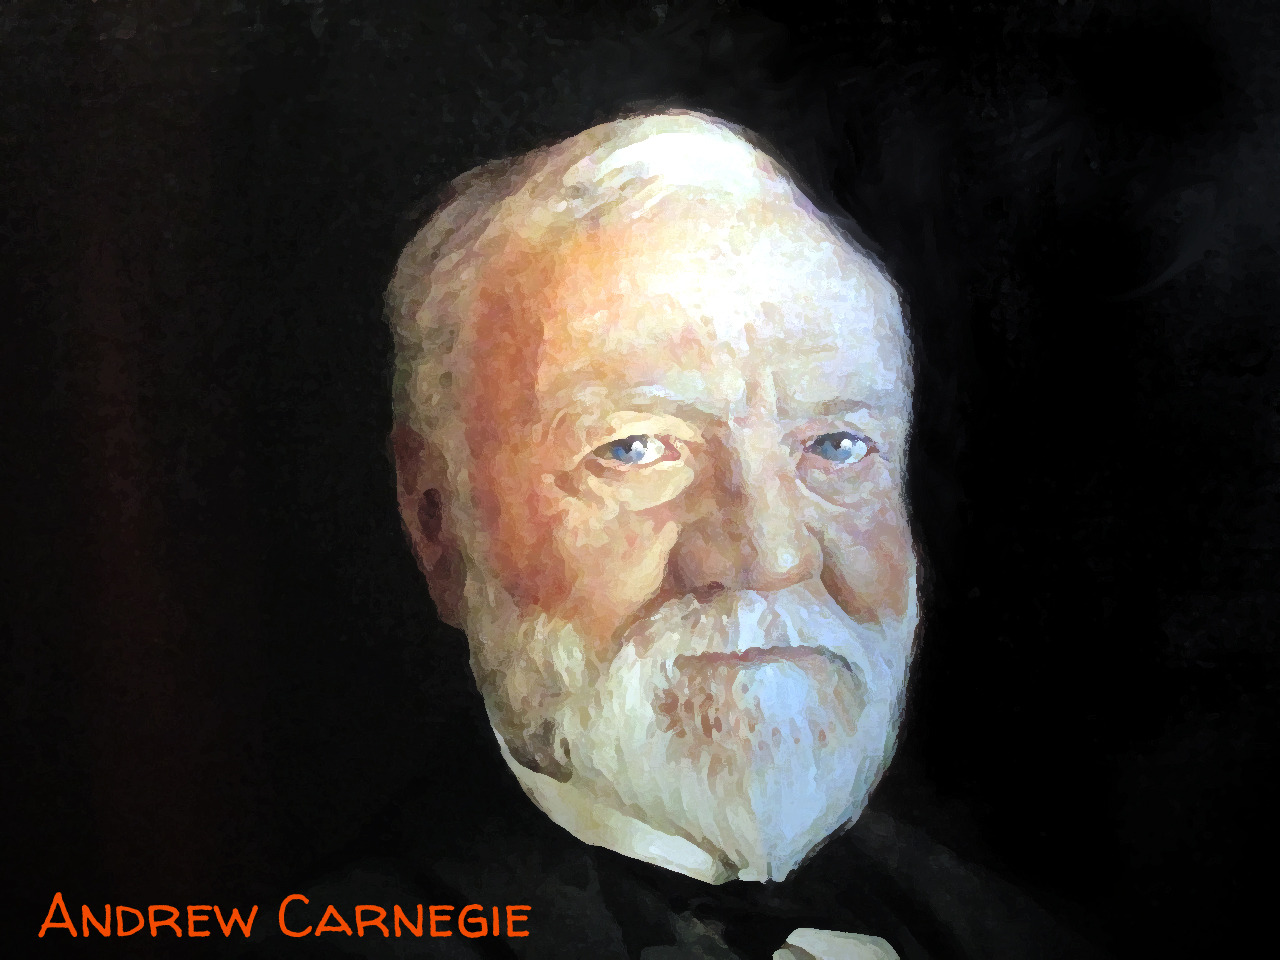 I owe a lot to Scottish-American businessman and philanthropist, Andrew Carnegie who donated funds to build 2,509 Carnegie libraries, (125 of which were built in Canada, in the early 20th century.  Carnegie's 1902 $10,000 donation made it possible to open the doors of the Waterloo Public Library on 44 Albert Street, Waterloo on November 1, 1905 Thanks Mr. Carnegie! Image Credit:  The United States National Gallery holds the original of this unattributed portrait of Andrew Carnegie that I've remixed to create this image (which is also, of course, in the public domain).